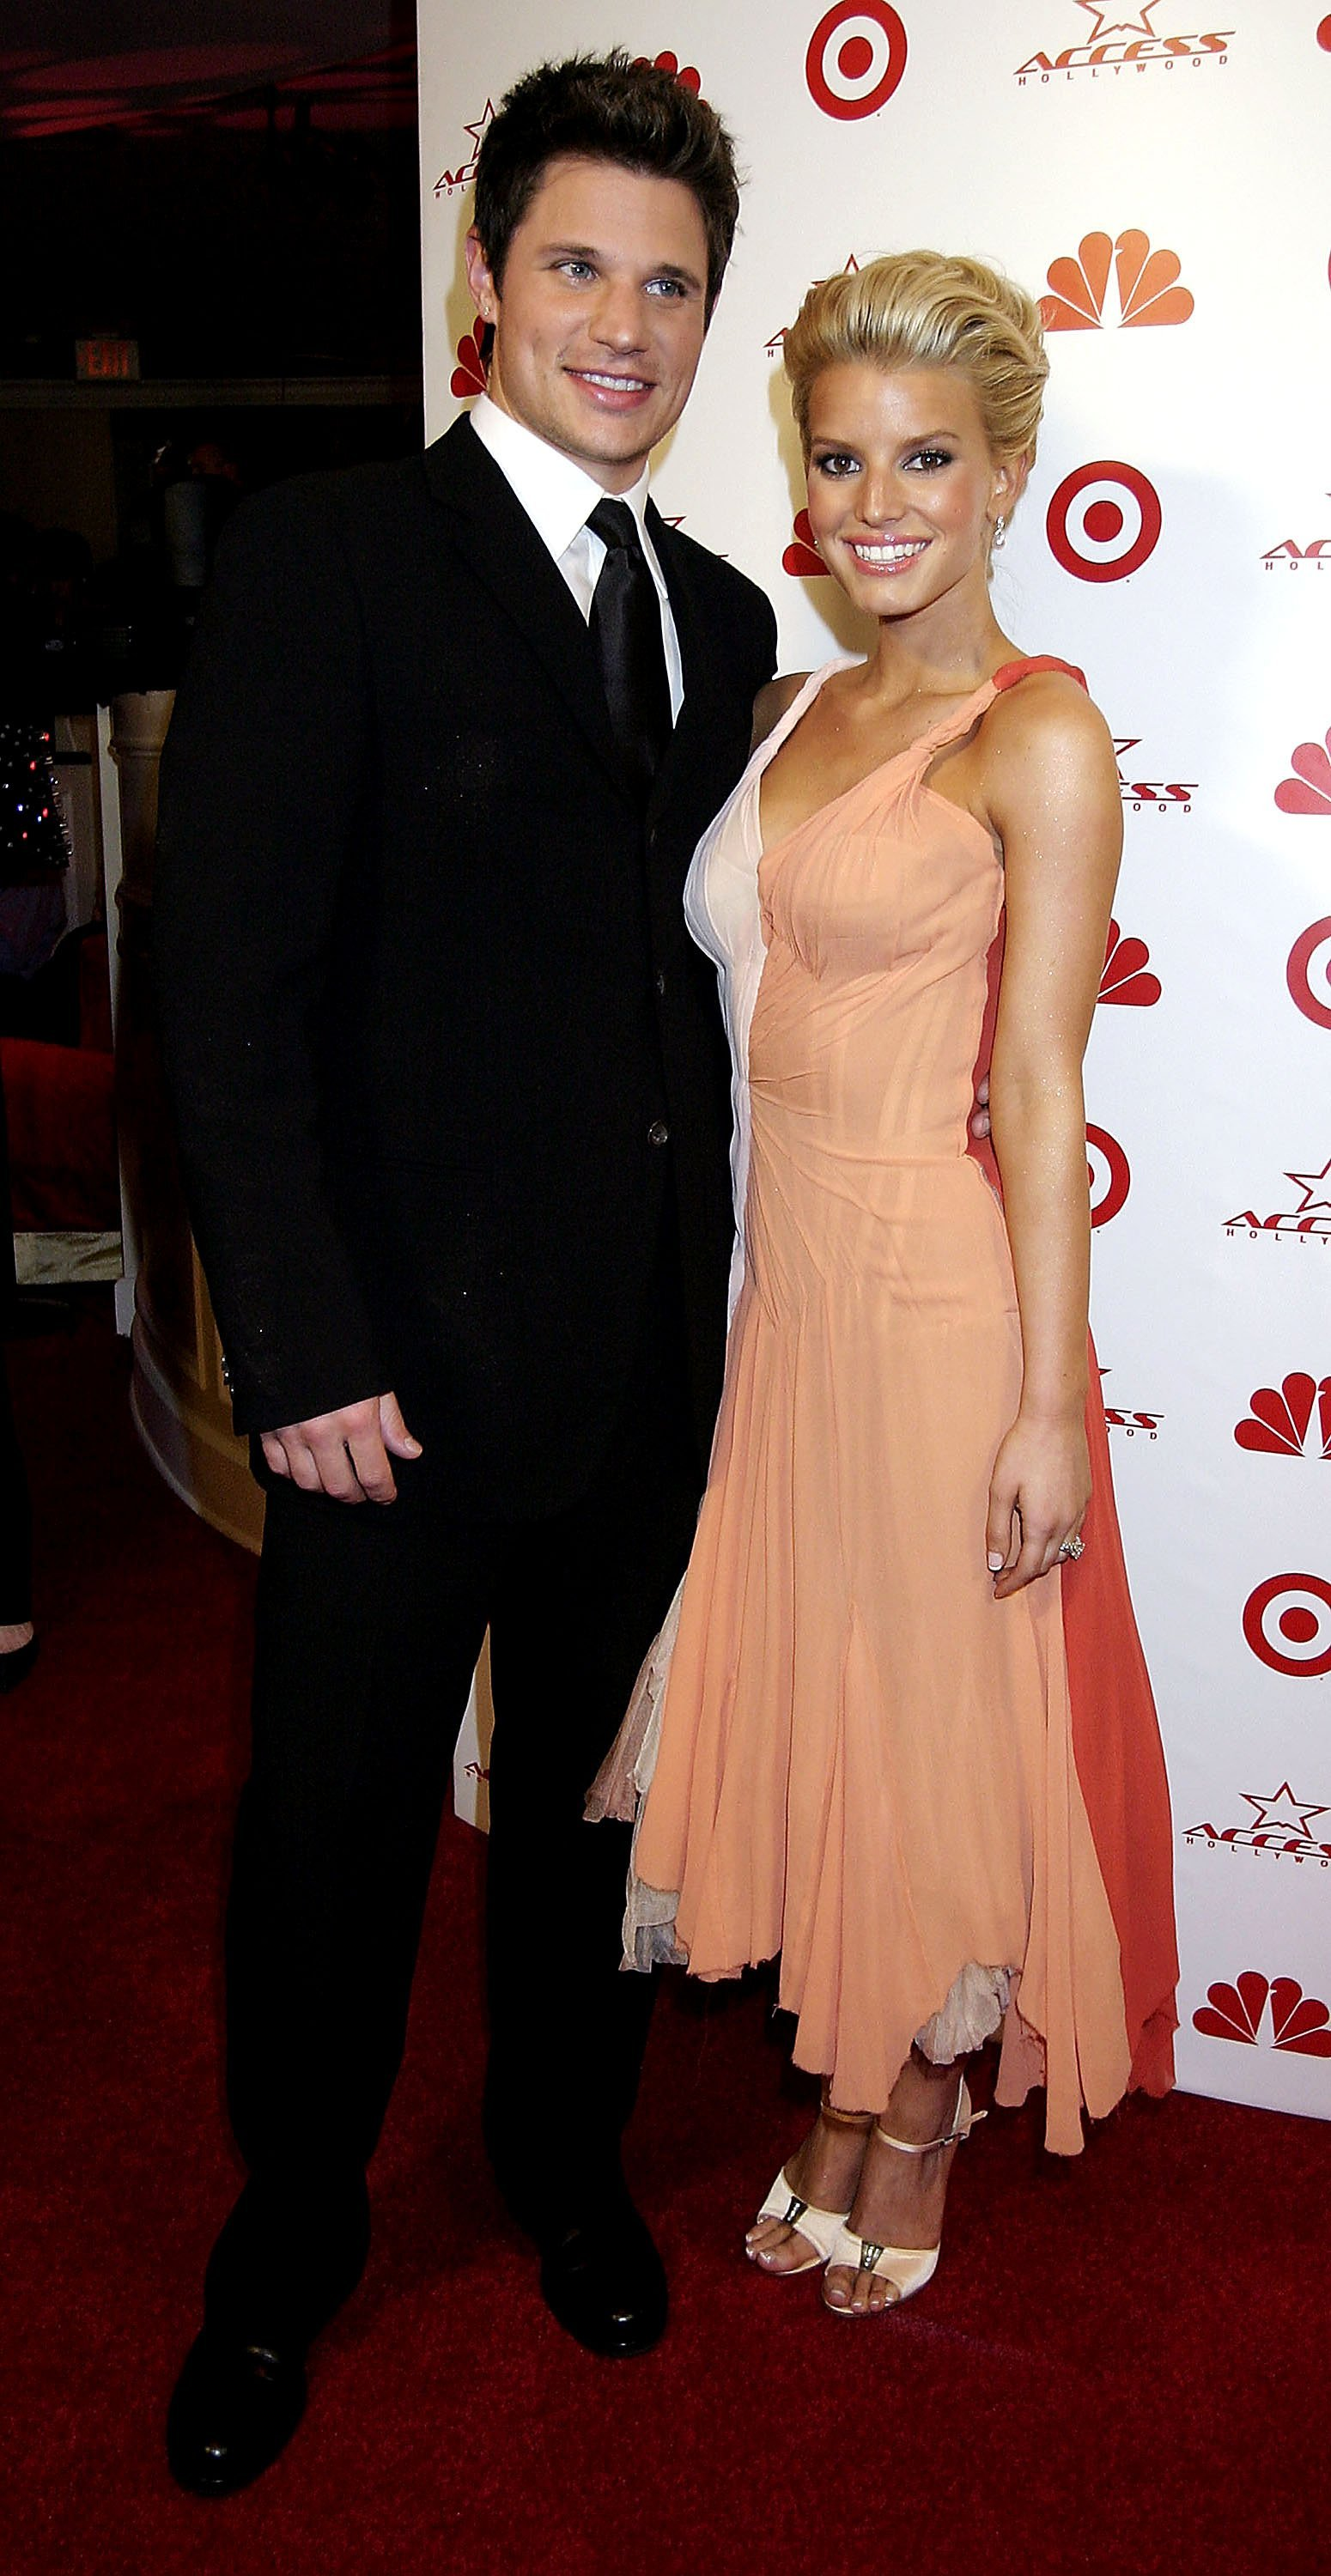 Nick Lachey and Jessica Simpson attend NBC's Access Hollywood Golden Globe Party, January 25, 2004, in Hollywood, California. | Source: Getty Images.